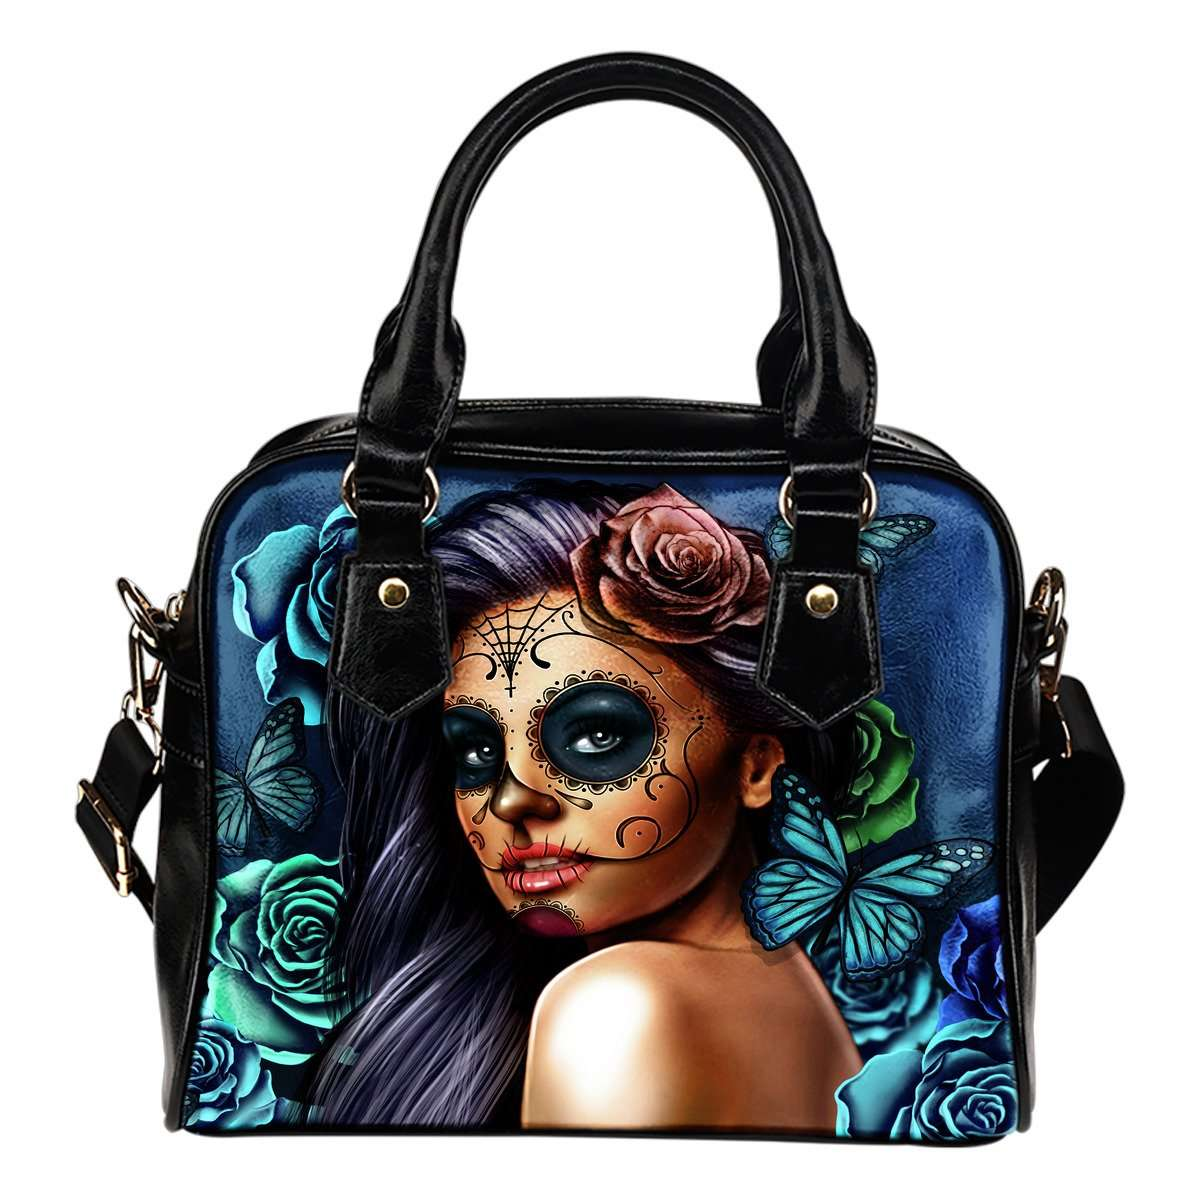 Blue Sugar Skull Girl Theme Women Fashion Shoulder Handbag Black Vegan Faux Leather